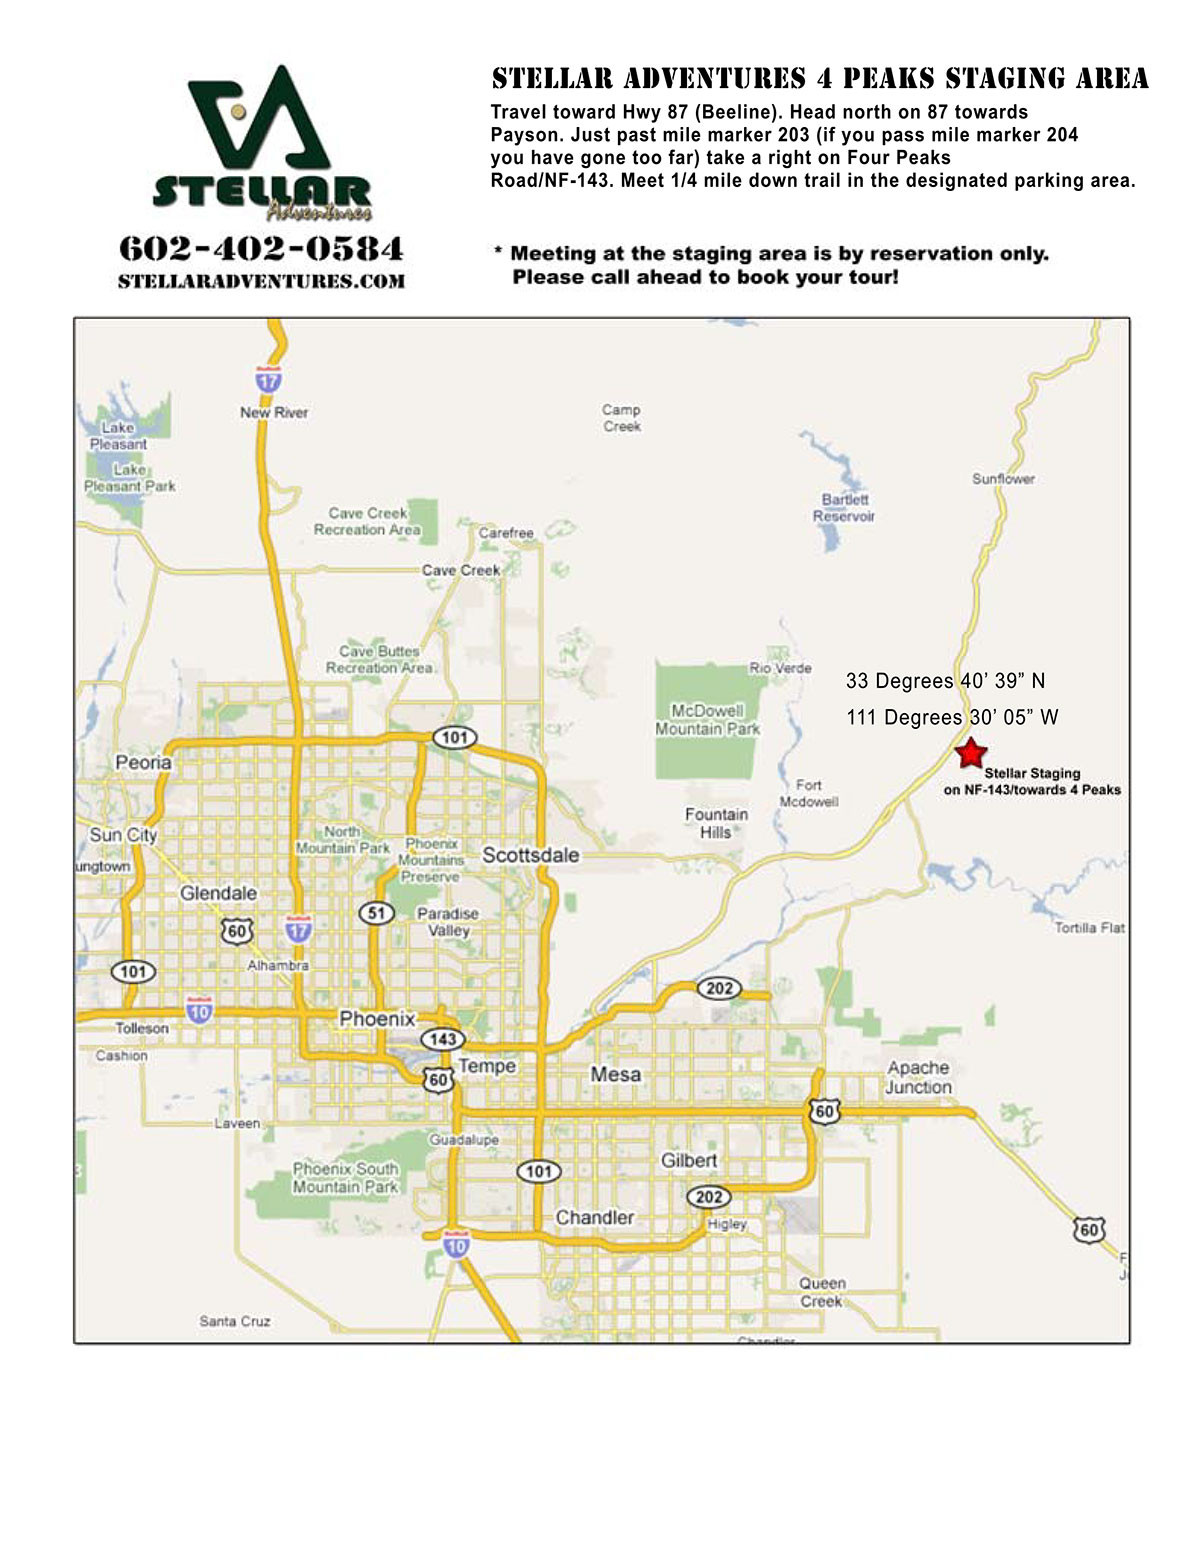 Printable Map and Directions Elegant Maps Arizona F Road Adventure tours by Stellar Adventures